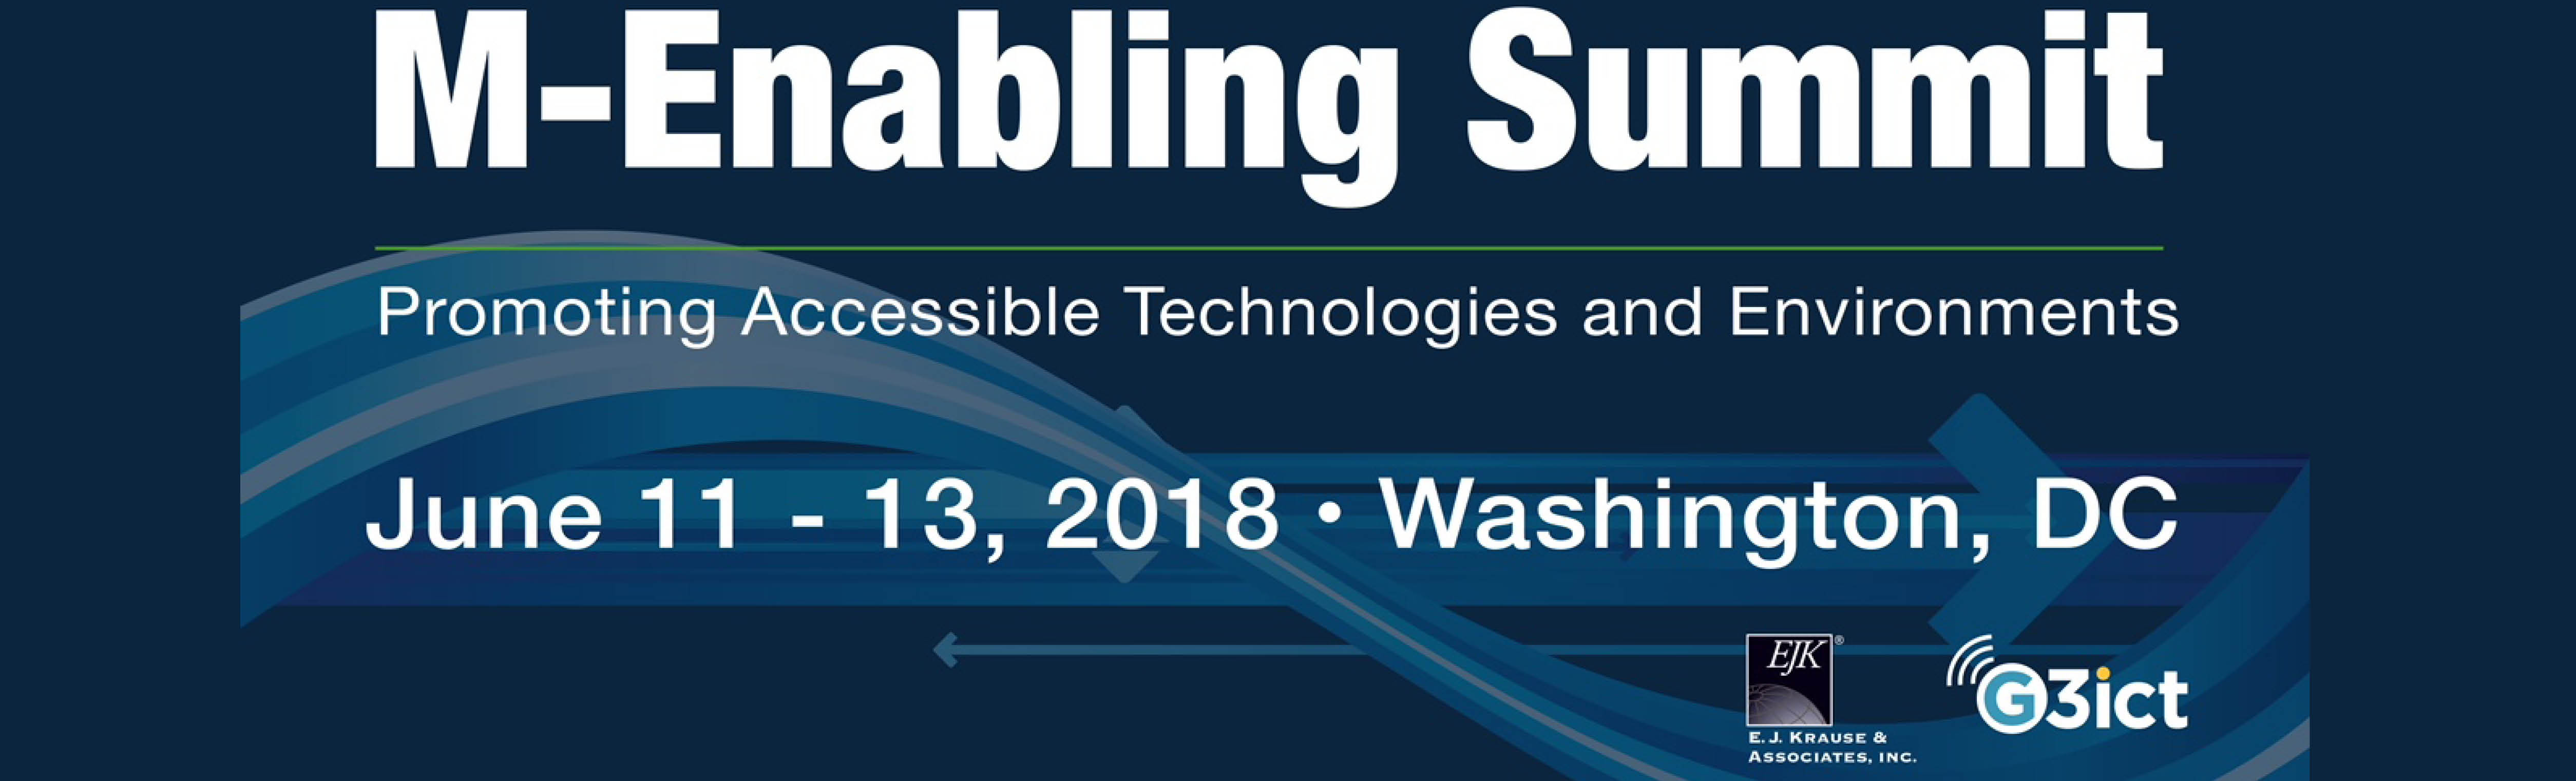 Sign up for the M-Enabling Summit taking place in Washington, DC!